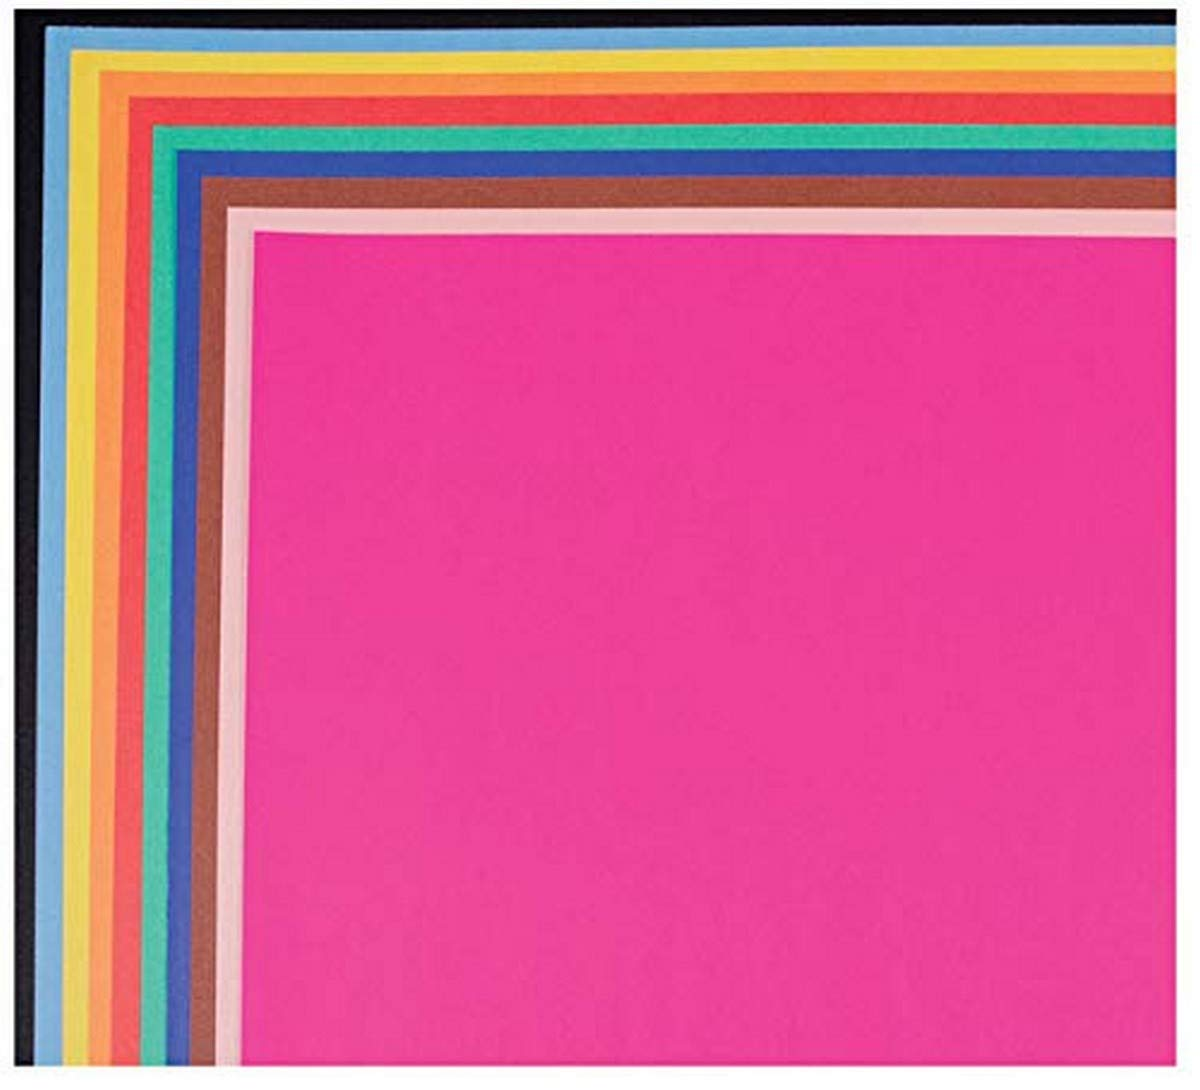 """School Smart 1485739 Railroad Board, 4-ply Thickness, 22"""" x 28"""", Assorted Color (Pack of 25)"""